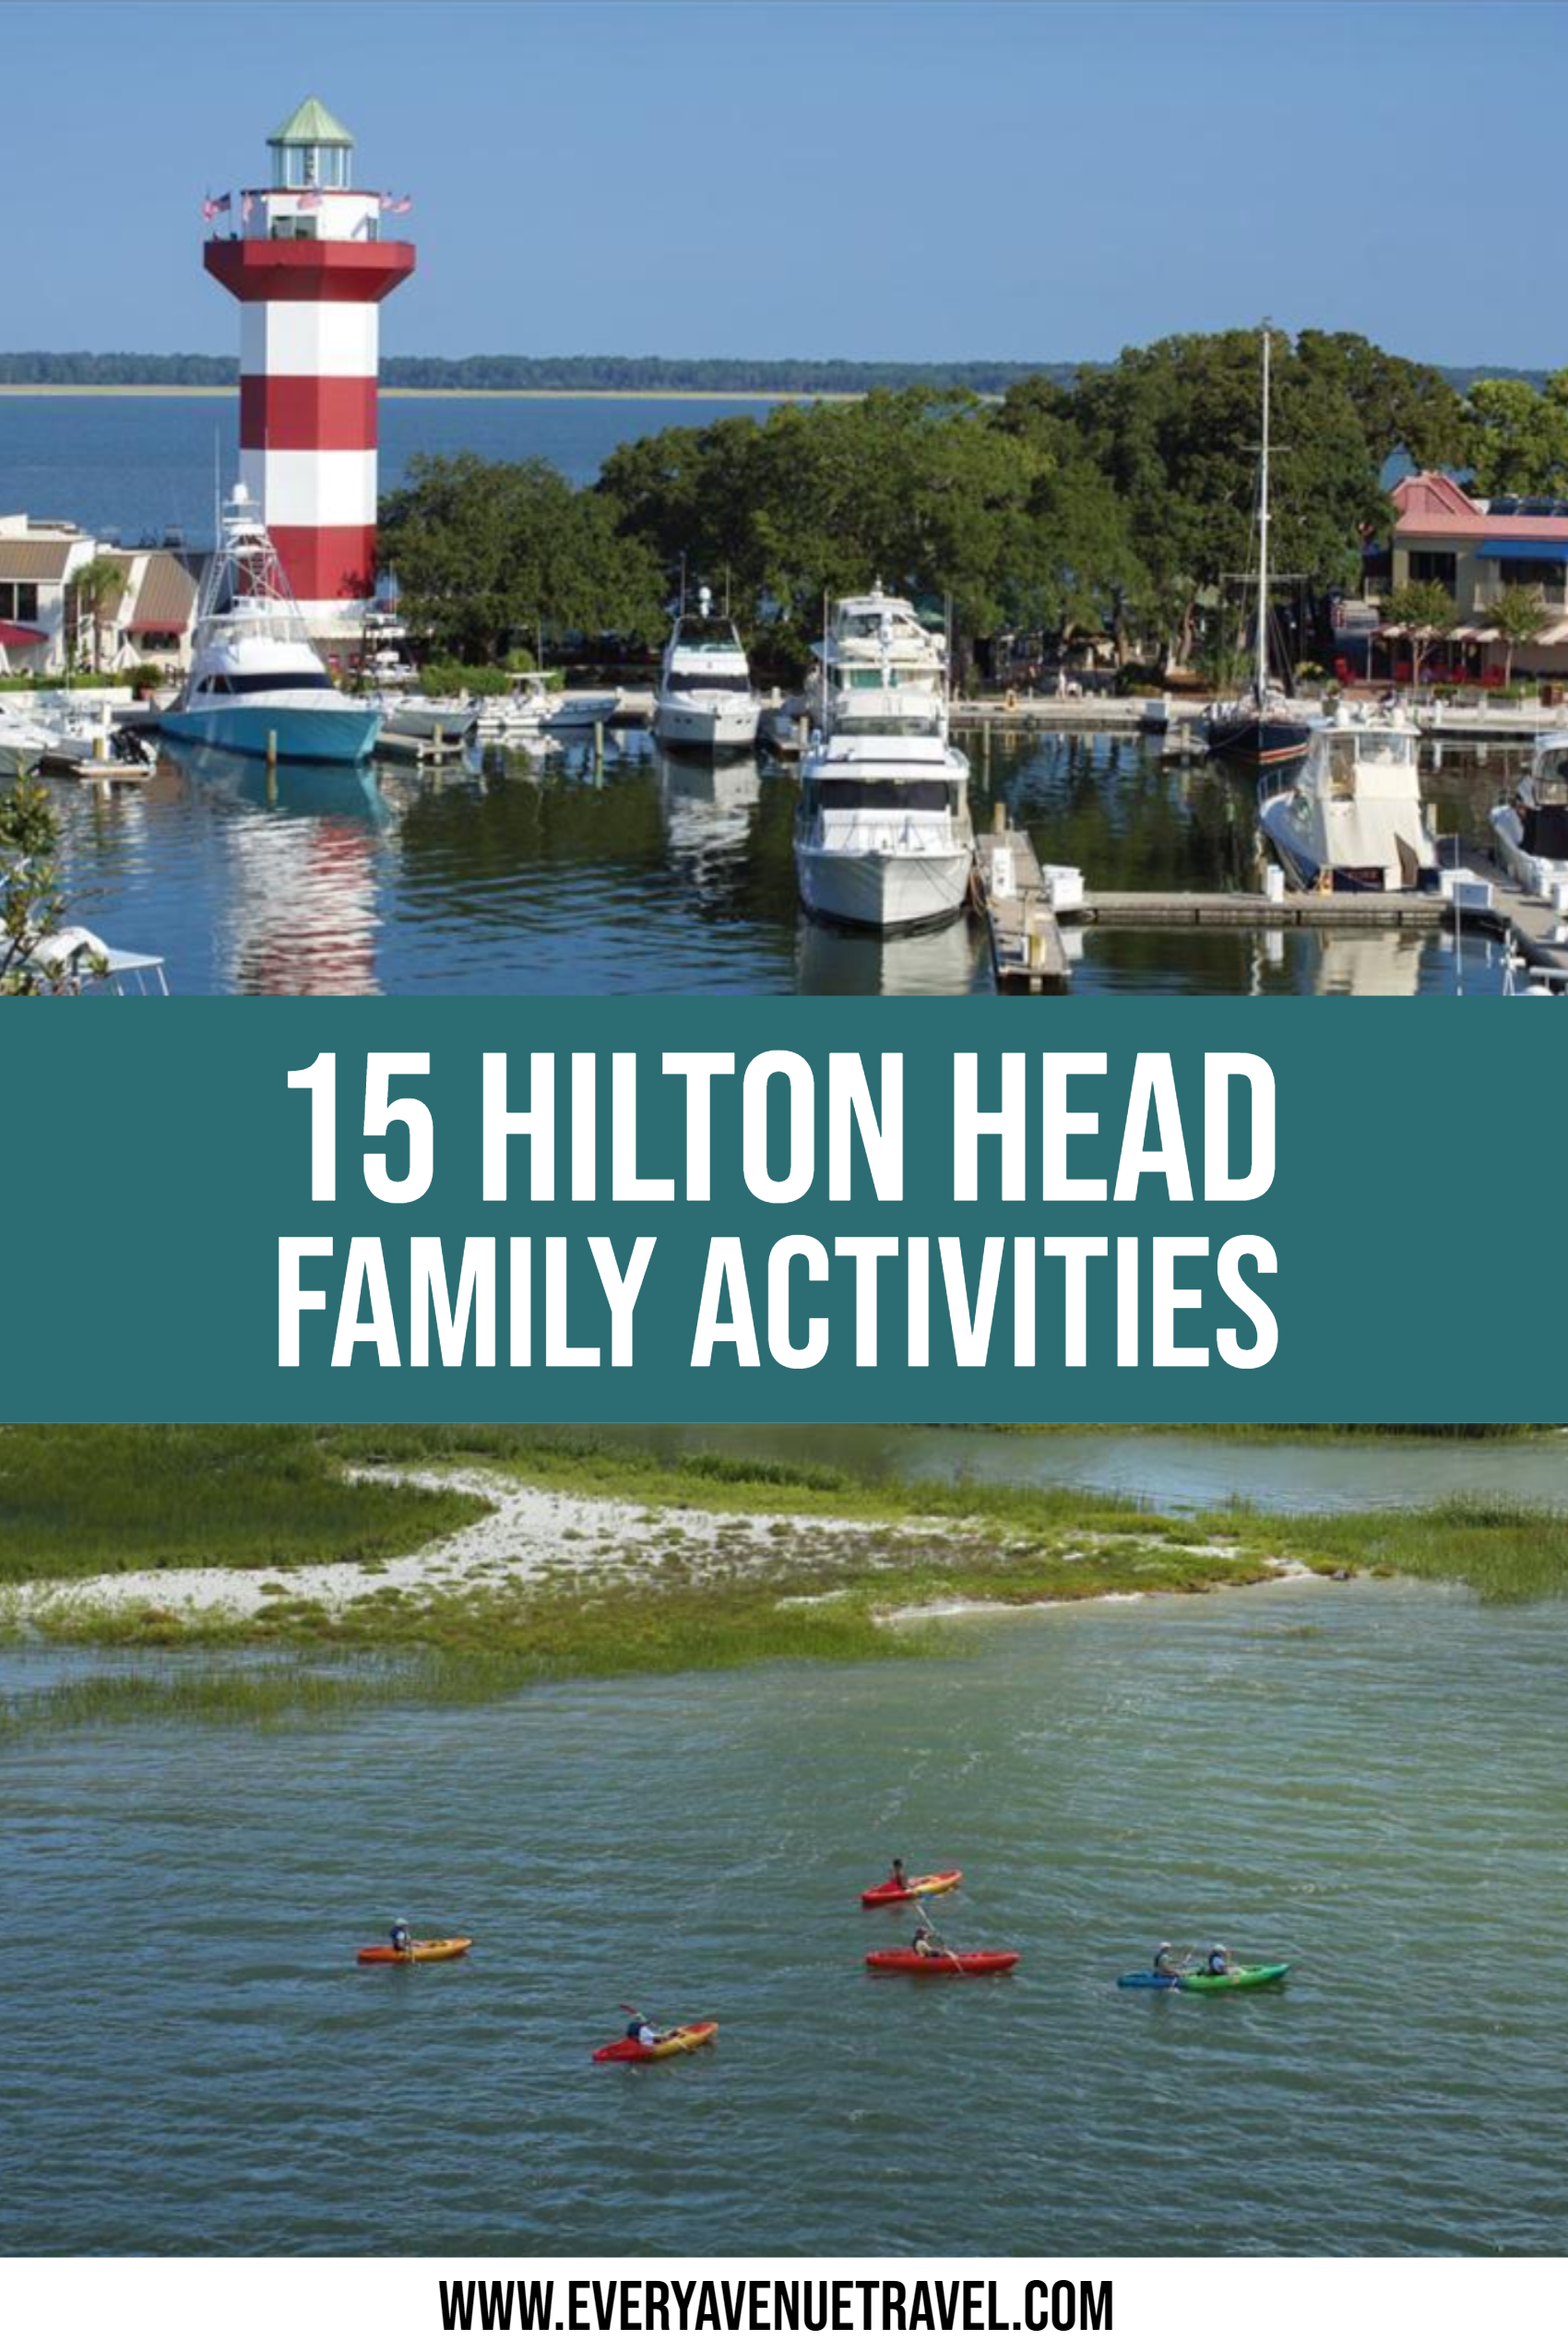 15 Hilton Head Family Activities